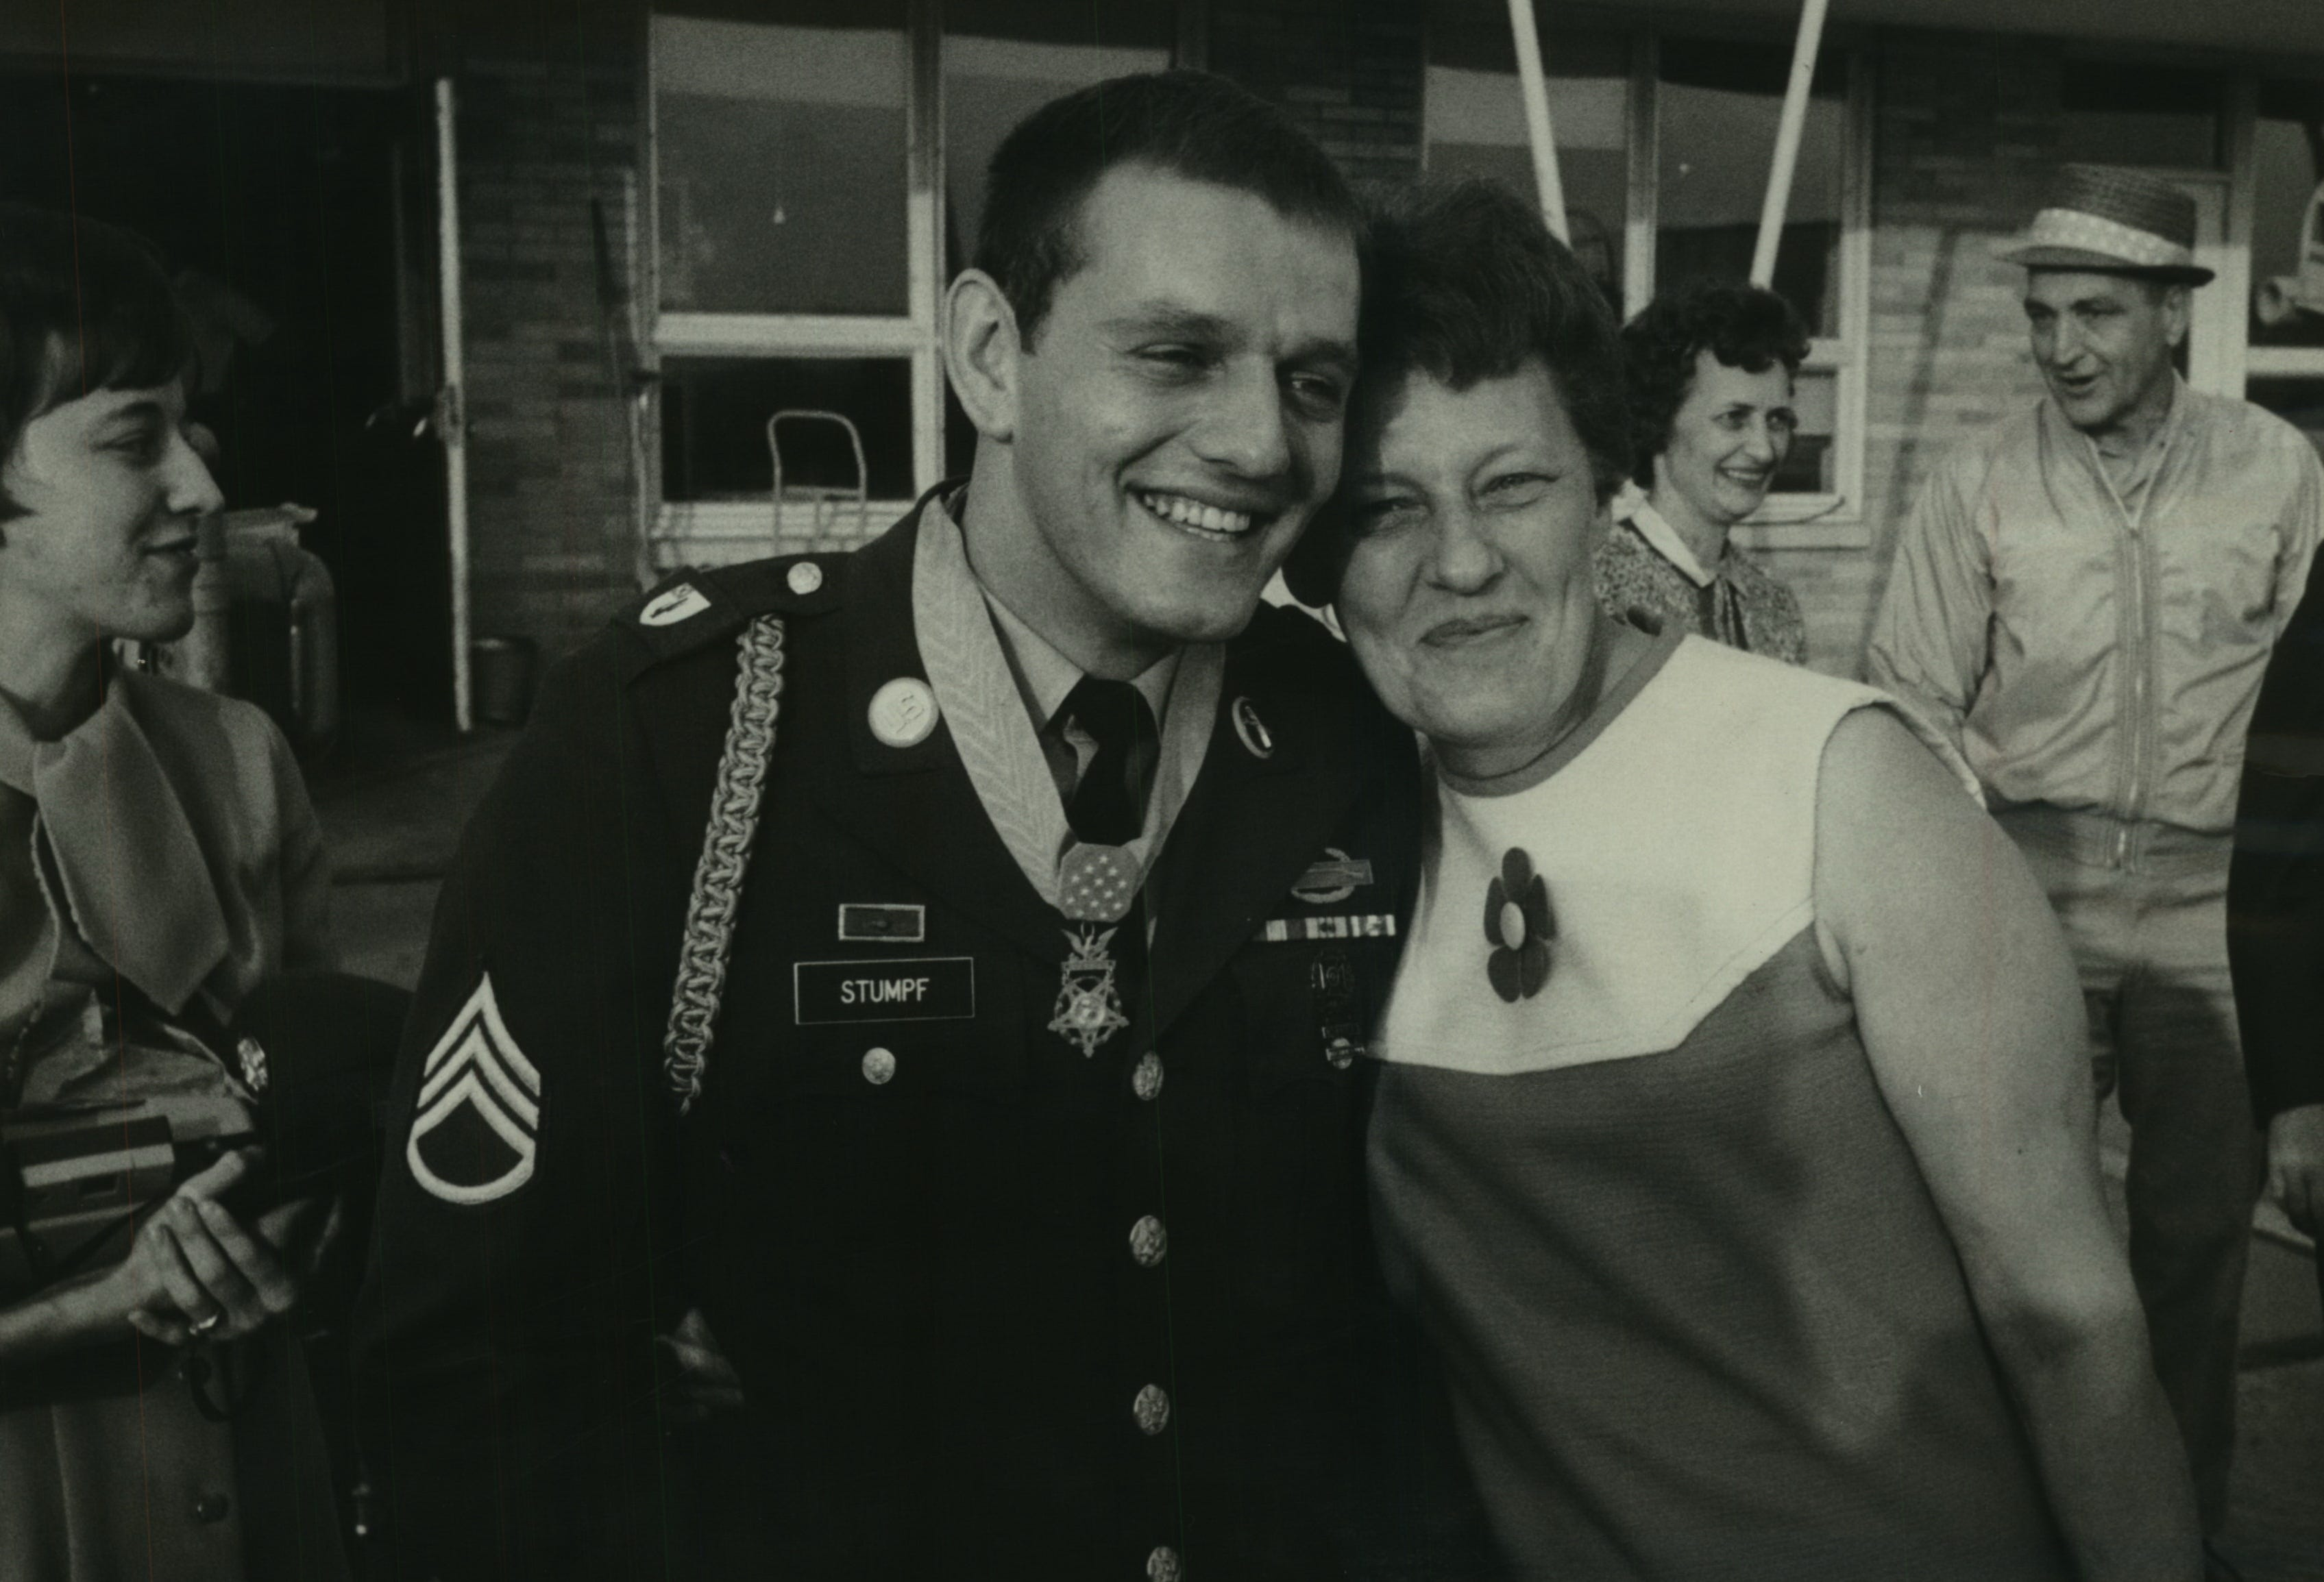 Wisconsin Medal of Honor recipient Kenneth E. Stumpf and his mother greet friends who had gathered at the Winnebago airport on Sept. 20, 1968, a day after he received the medal from President Lyndon Johnson in Washington. Nearly 500 people jammed the Menasha community square later in the evening to pay tribute to Stumpf, 23.